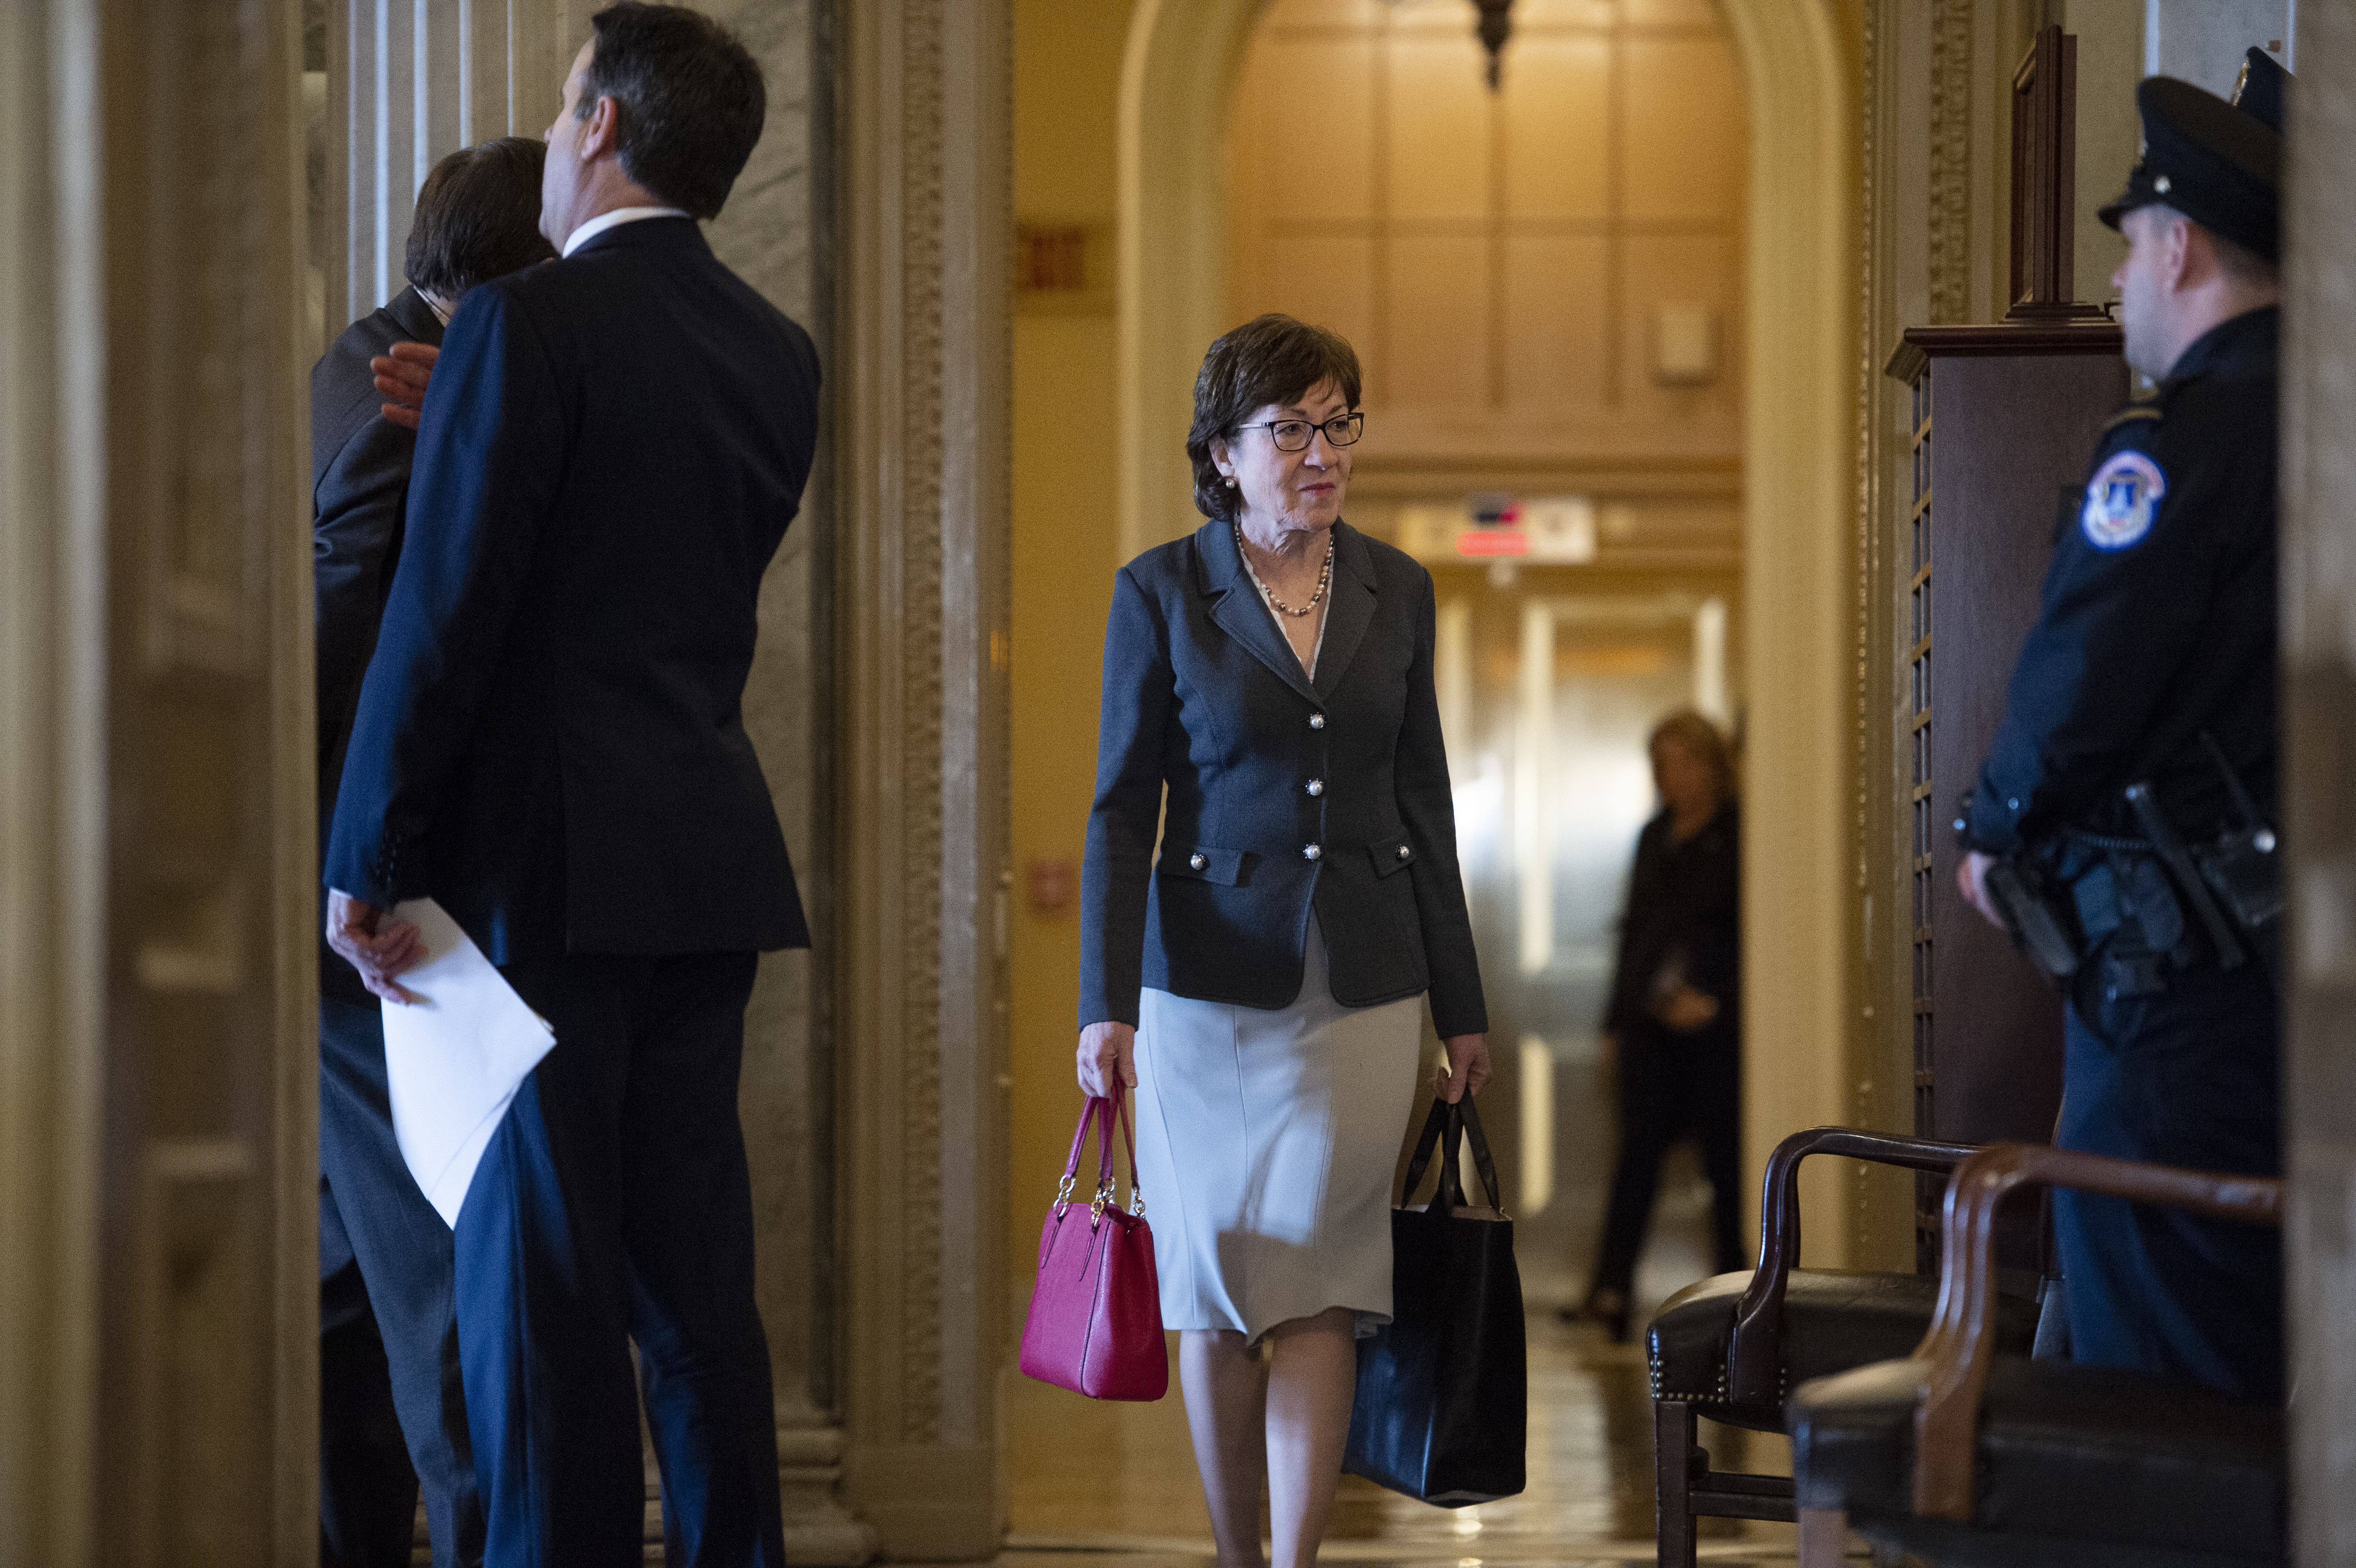 UNITED STATES - JANUARY 30: Sen. Susan Collins, R-Maine, arrives for the continuation of the Senate Impeachment Trial of President Donald Trump on Thursday, Jan. 30, 2020. (Photo by Caroline Brehman/CQ Roll Call)